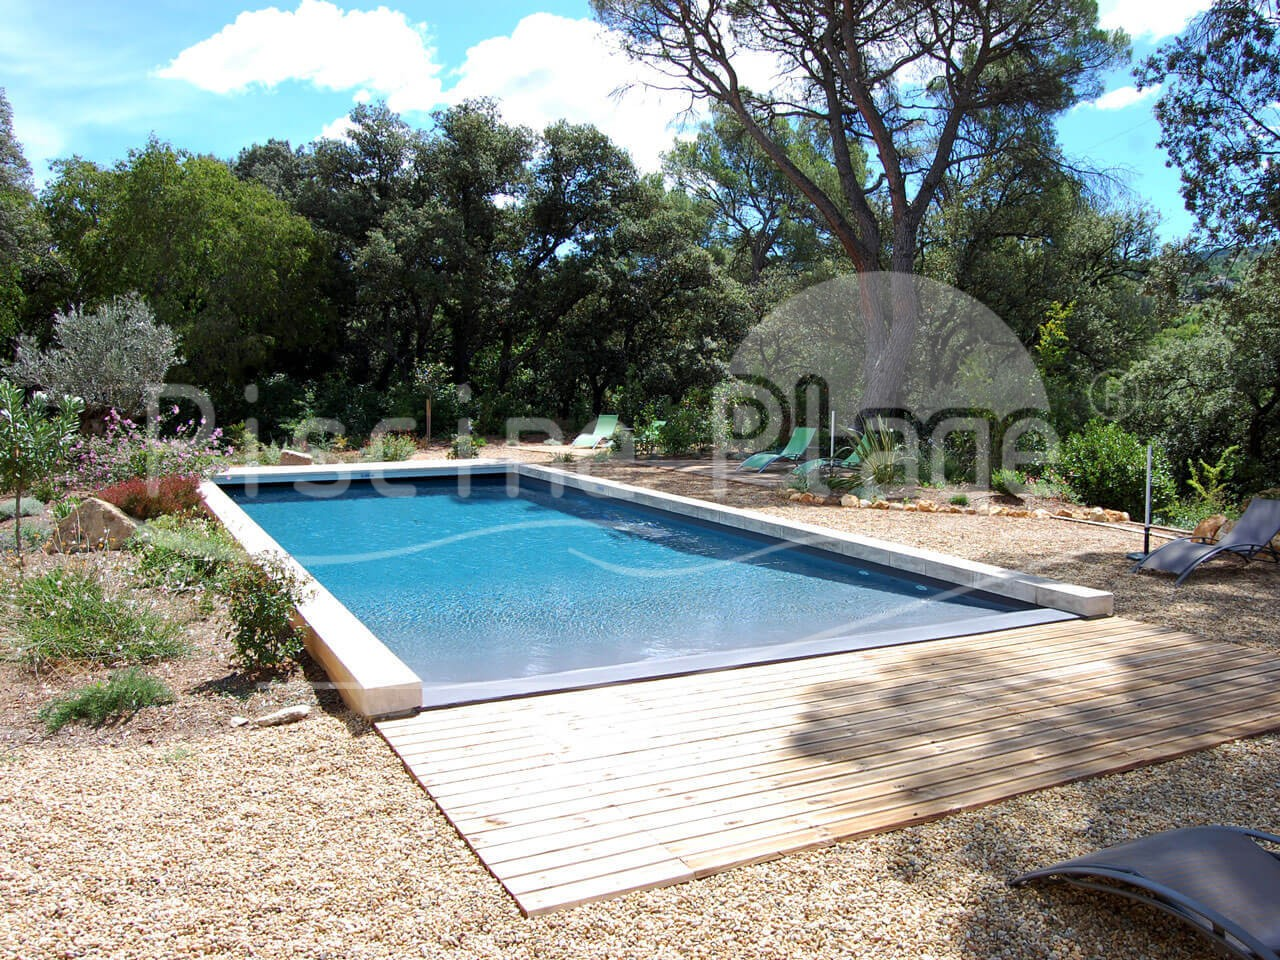 Design piscine contemporaine plage bois besancon 1321 for Piscine center